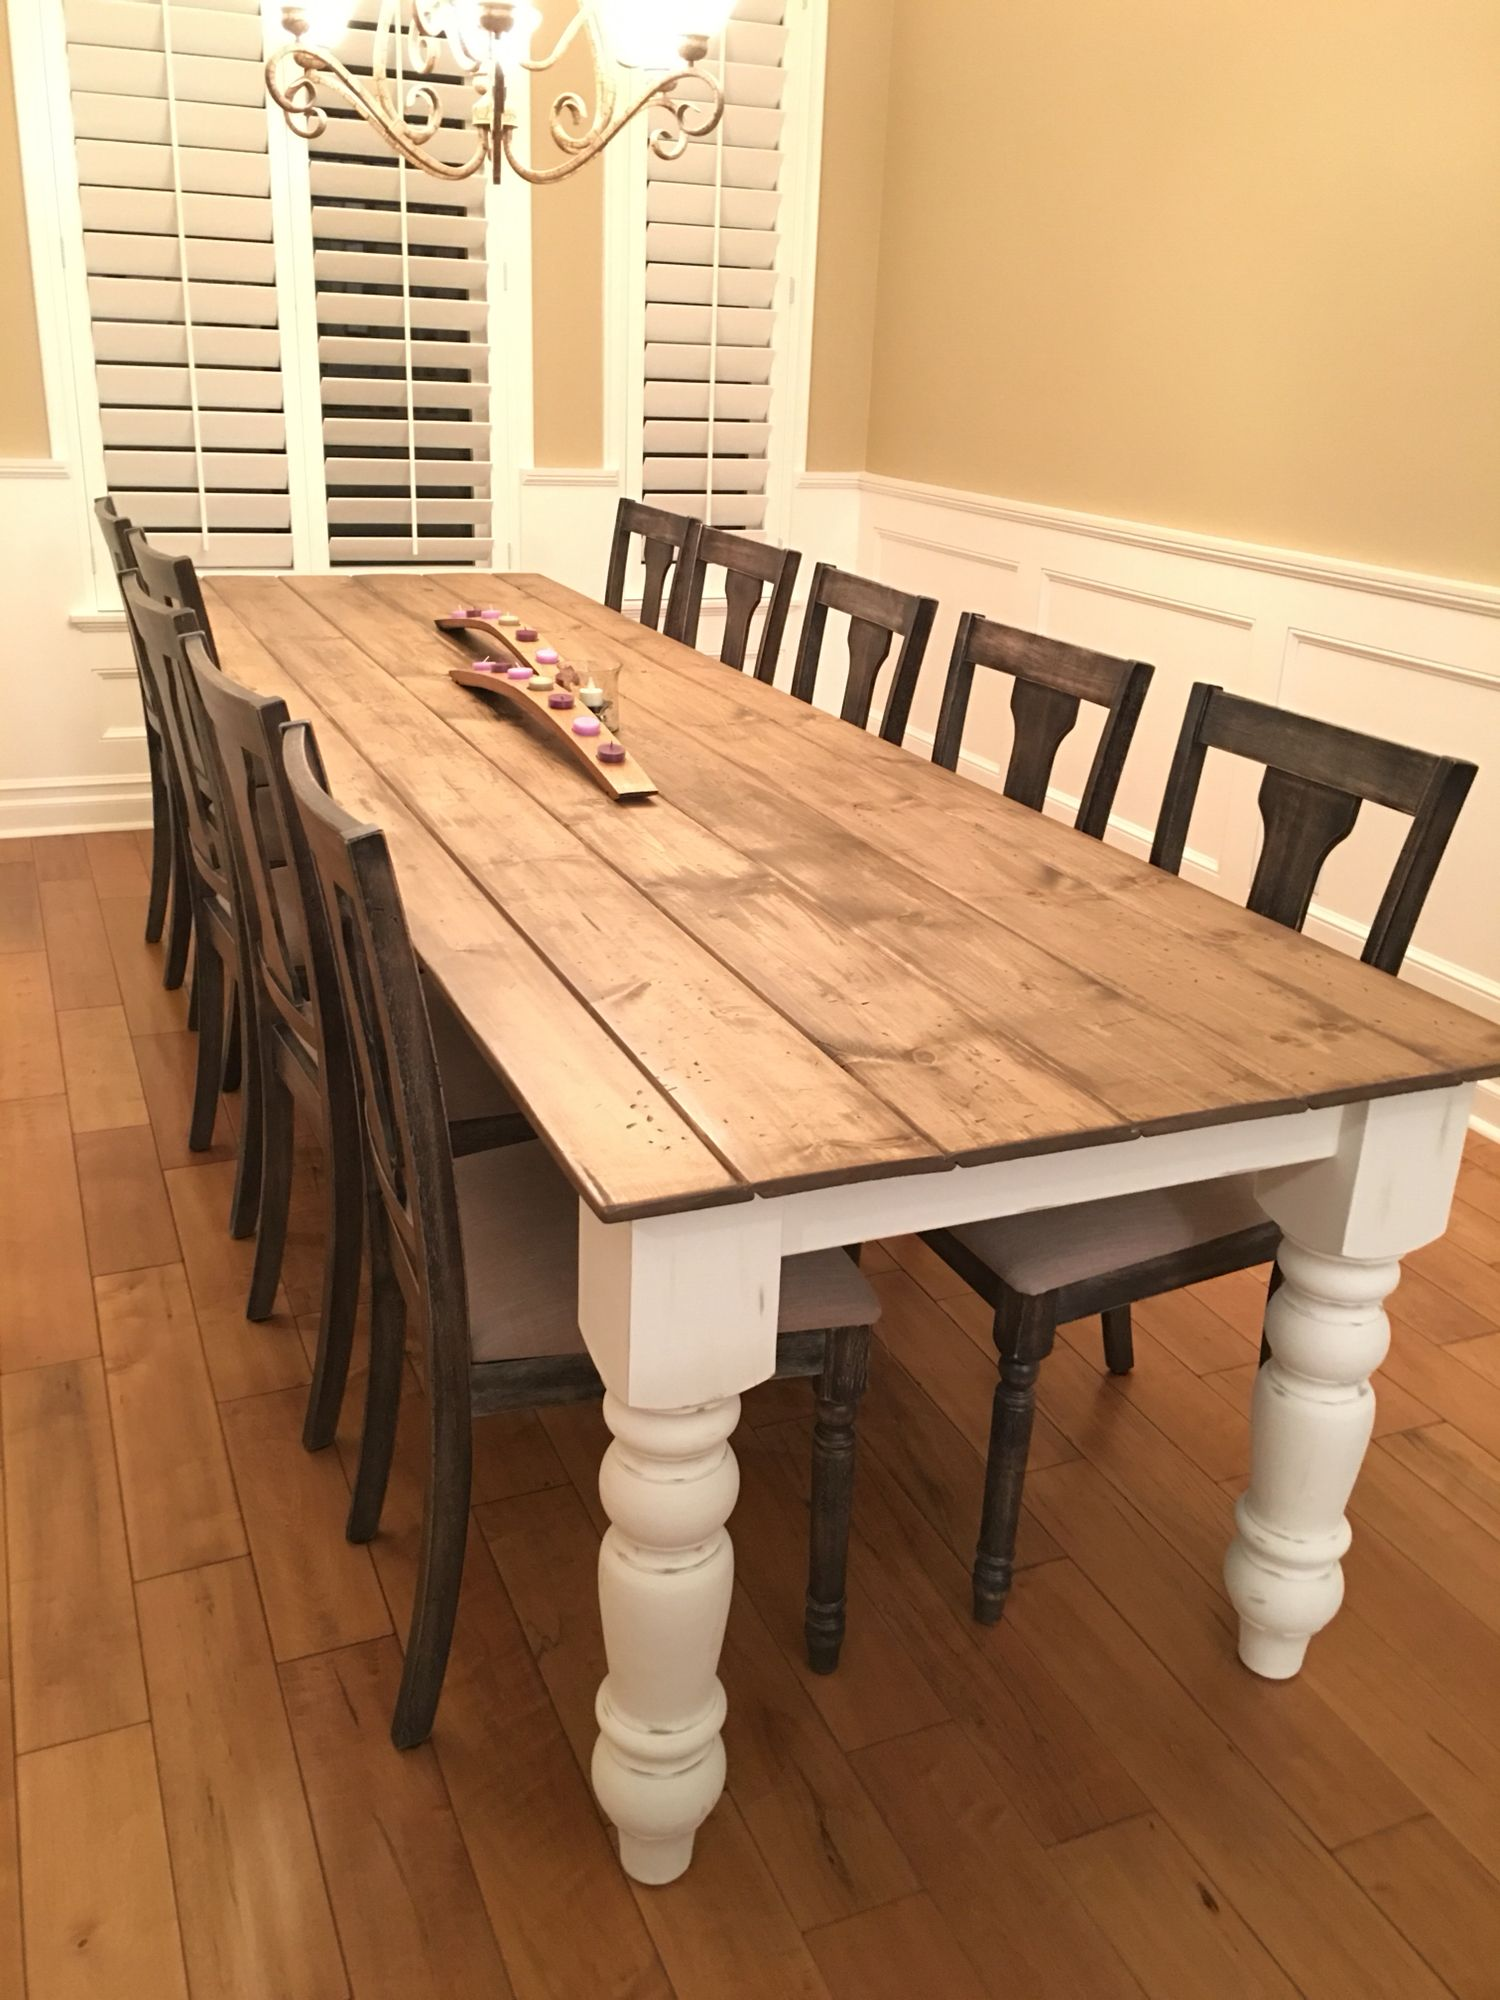 DIY FARMHOUSE TABLE My husband made my 10 foot 8 inch farmhouse